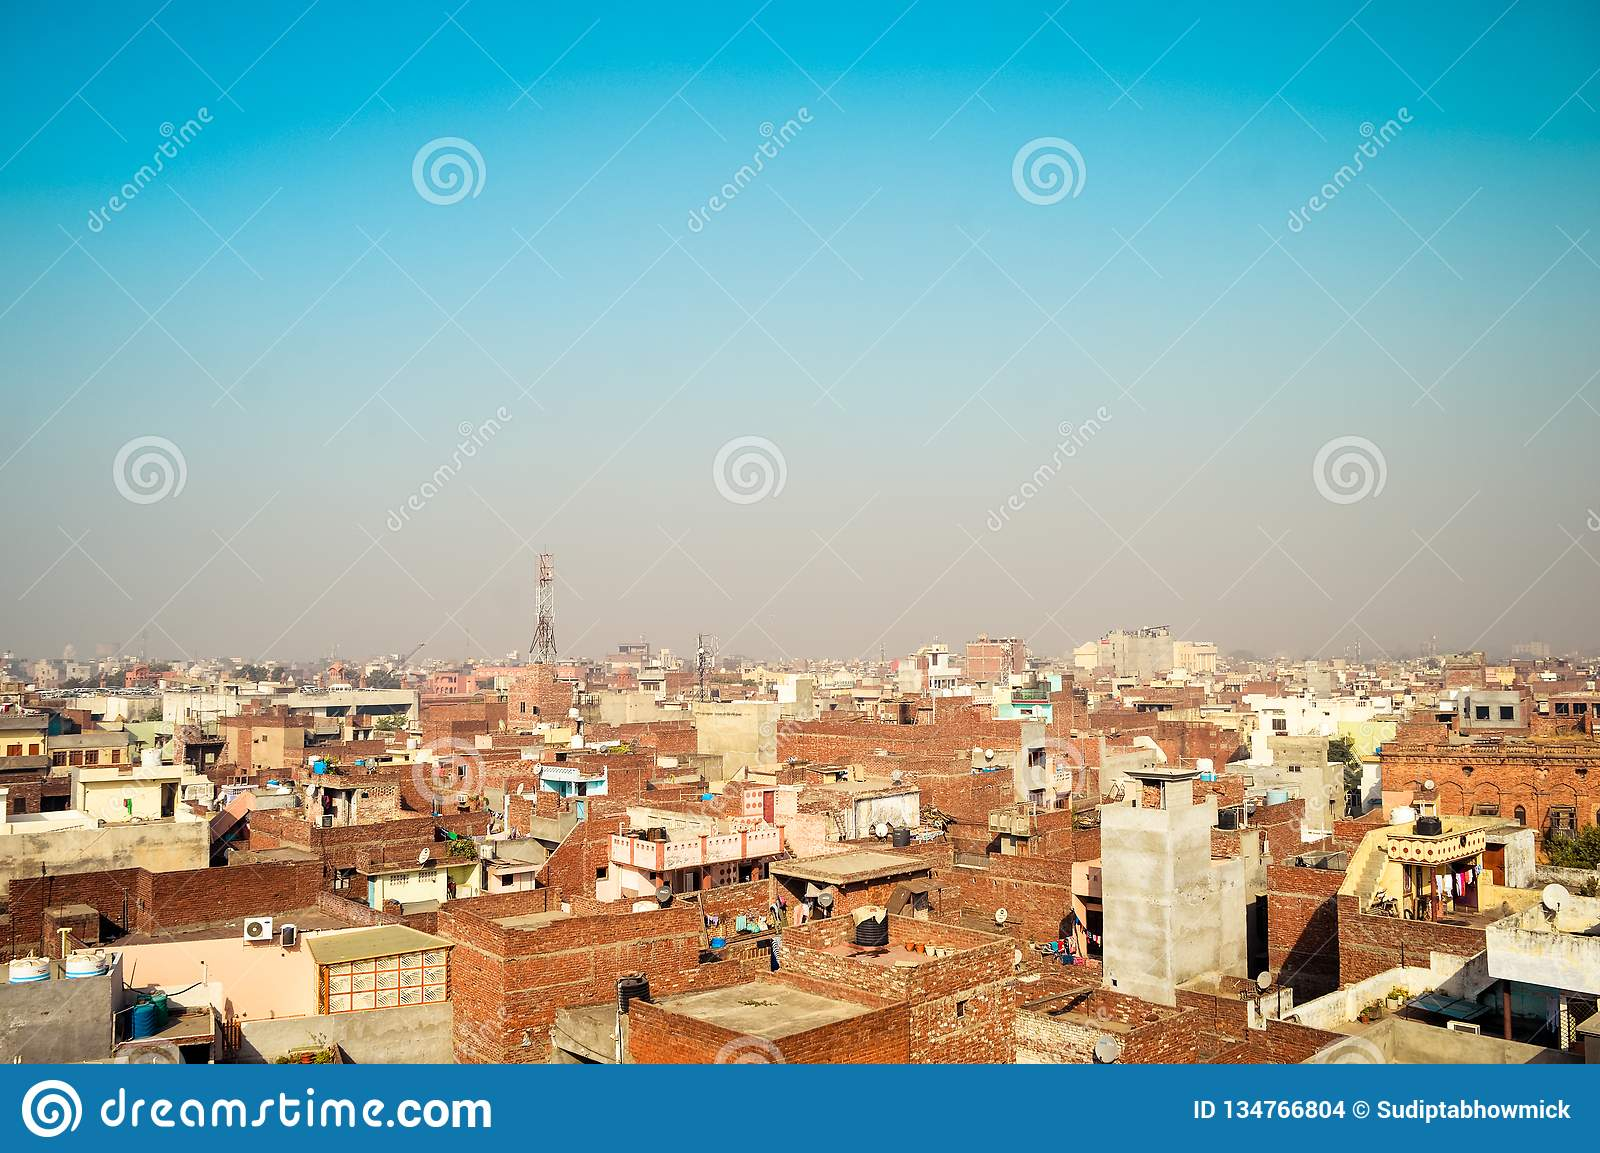 Amritsar, India. Downtown cityscape with top view on skyscrapers Image